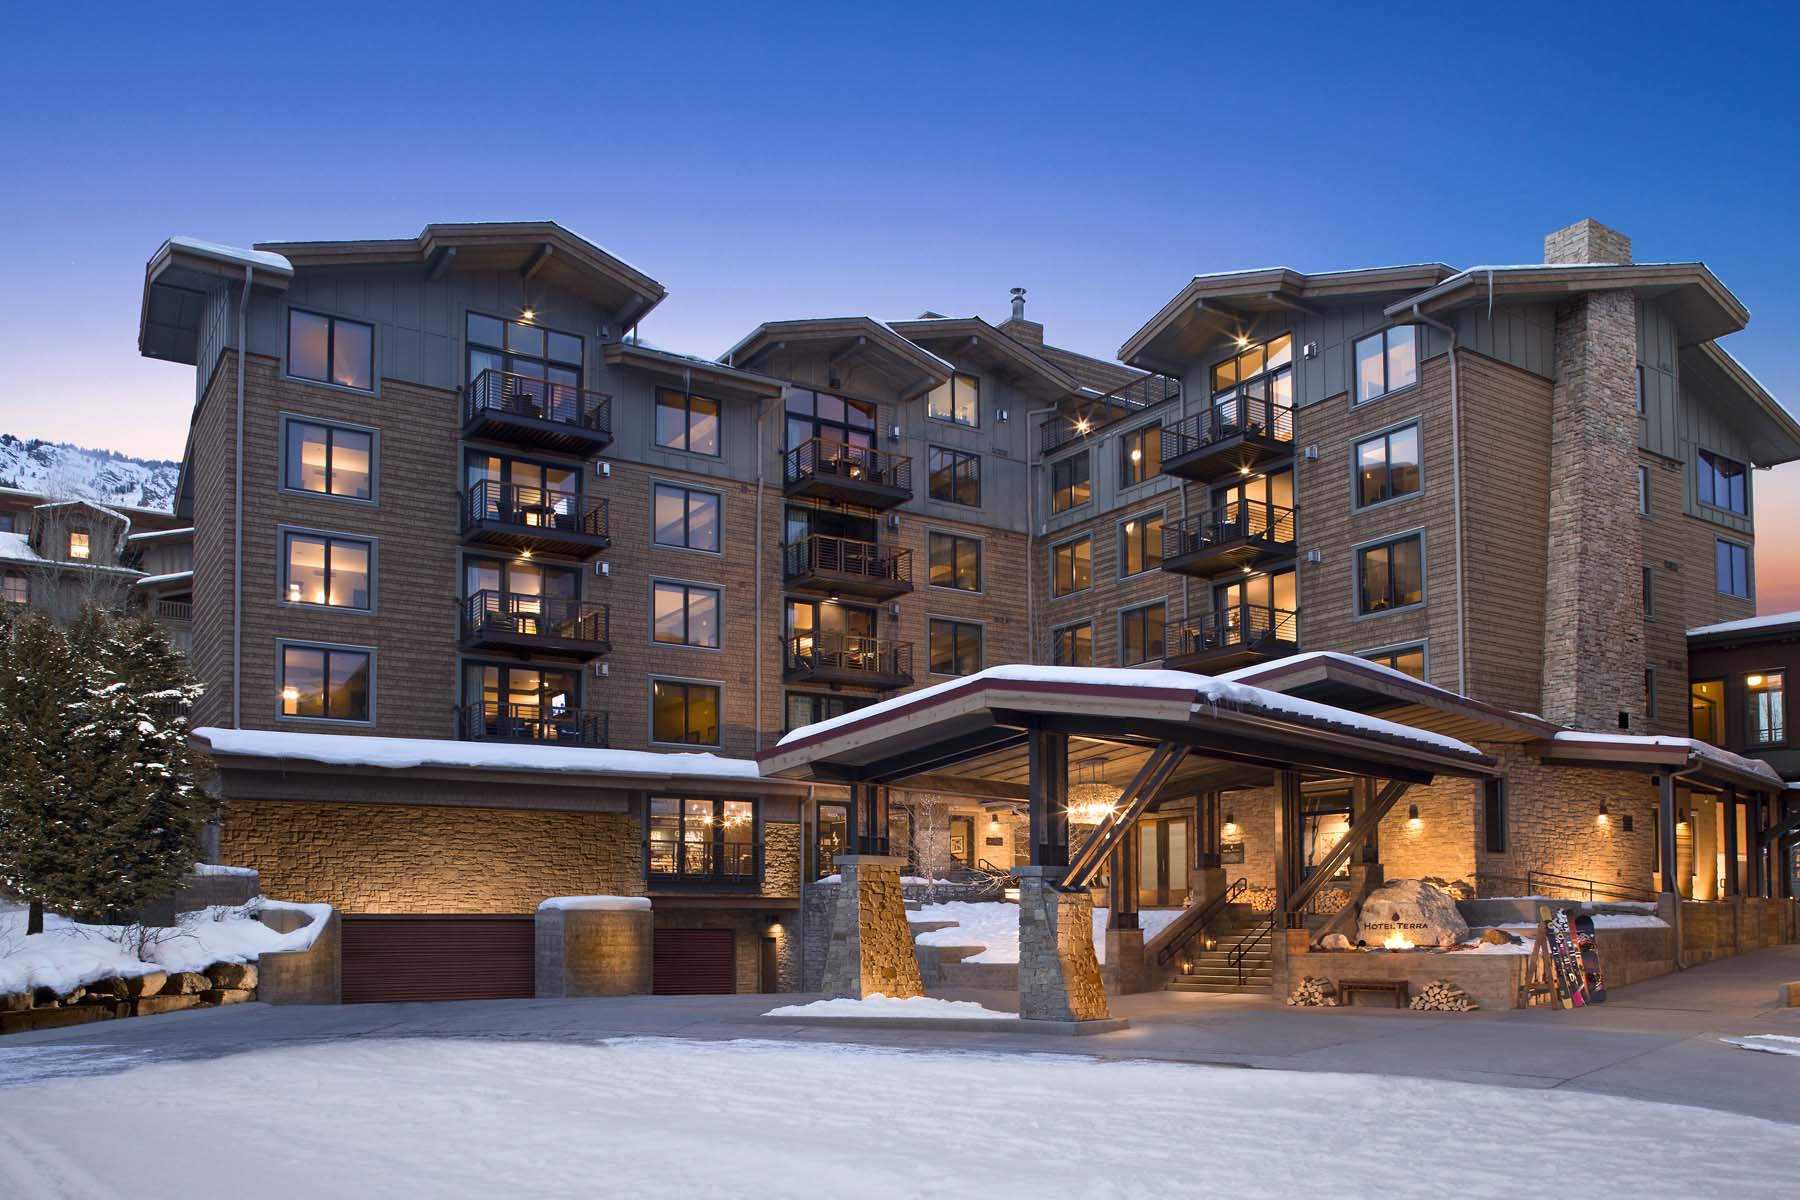 Appartement en copropriété pour l Vente à Slopeside 3 bedroom/4 bath condo 3325 W. Village Drive Unit 267 Teton Village, Wyoming, 83025 Jackson Hole, États-Unis